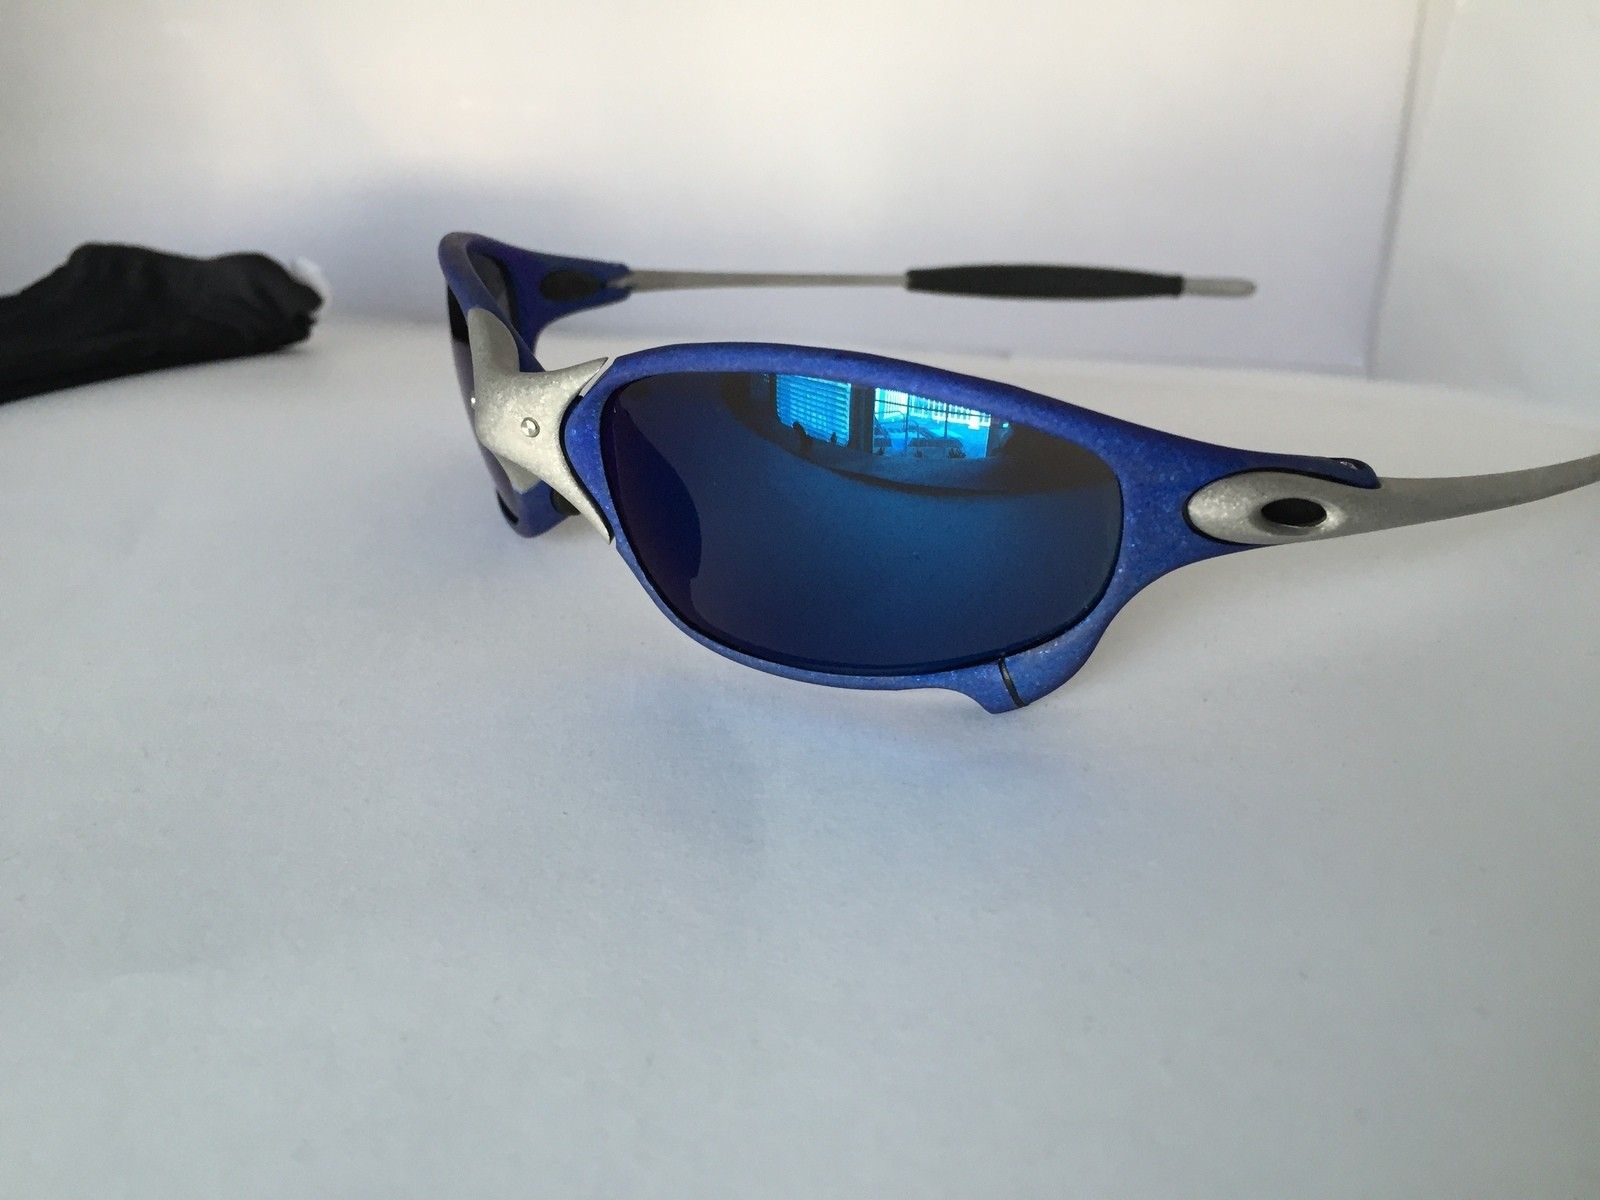 Anodized Juliet Dallas Cowboys colors Blue/Silver w/ OEM Ice Lenses - IMG_1785.JPG